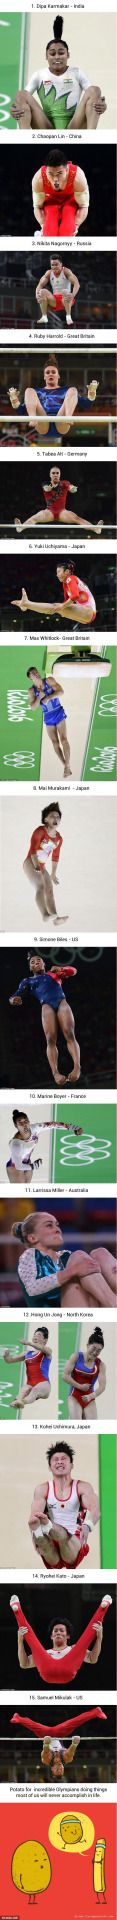 15 Photos Of Olympian Gymnasts Show How Intense The Competition Is #lol #funny #rofl #memes #lmao #hilarious #cute